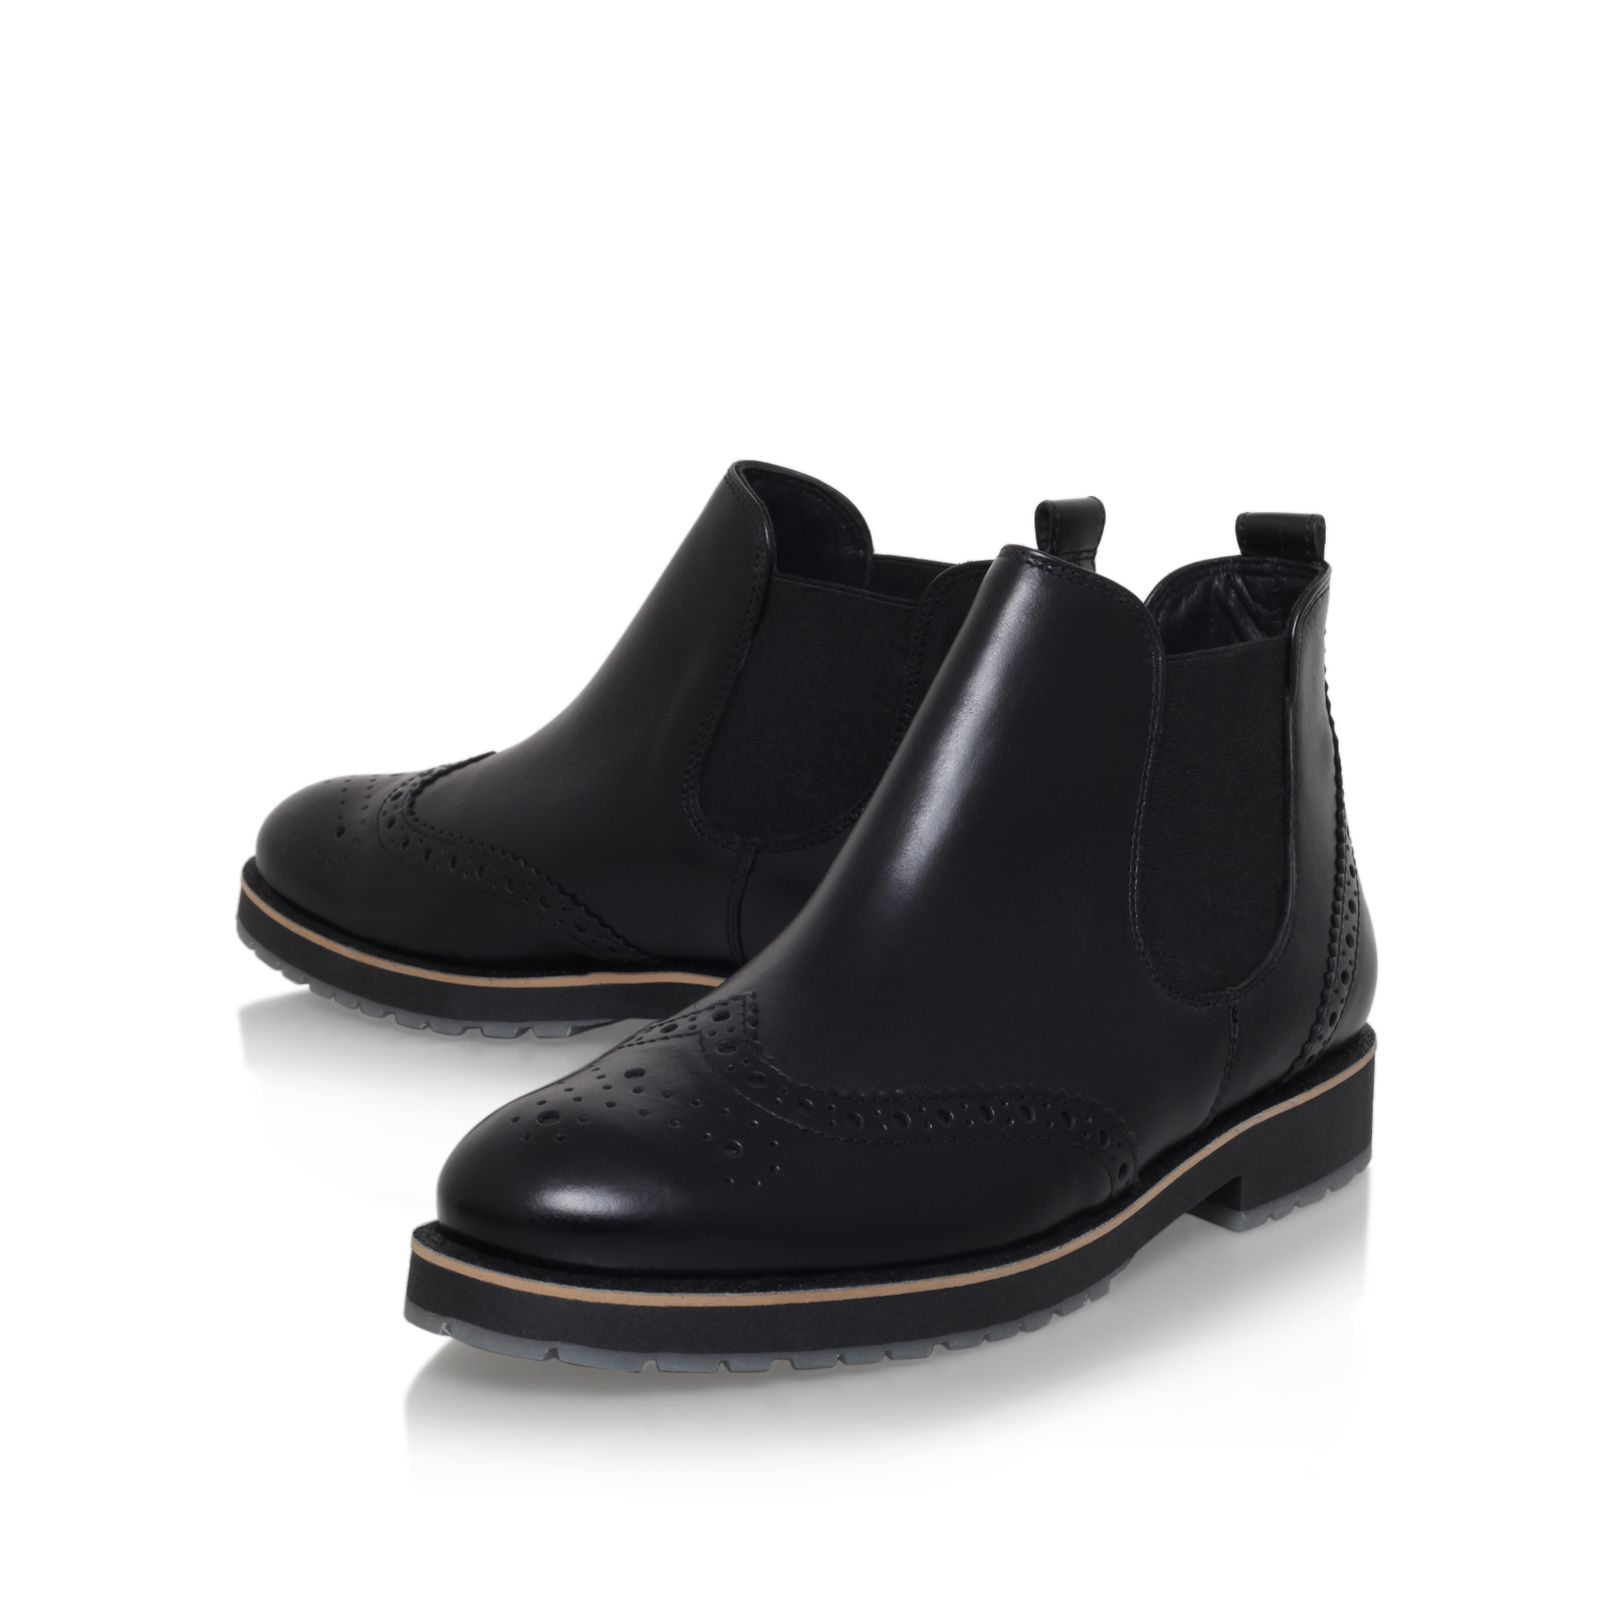 paul green chelsea fl bt low heel ankle boots in black for. Black Bedroom Furniture Sets. Home Design Ideas